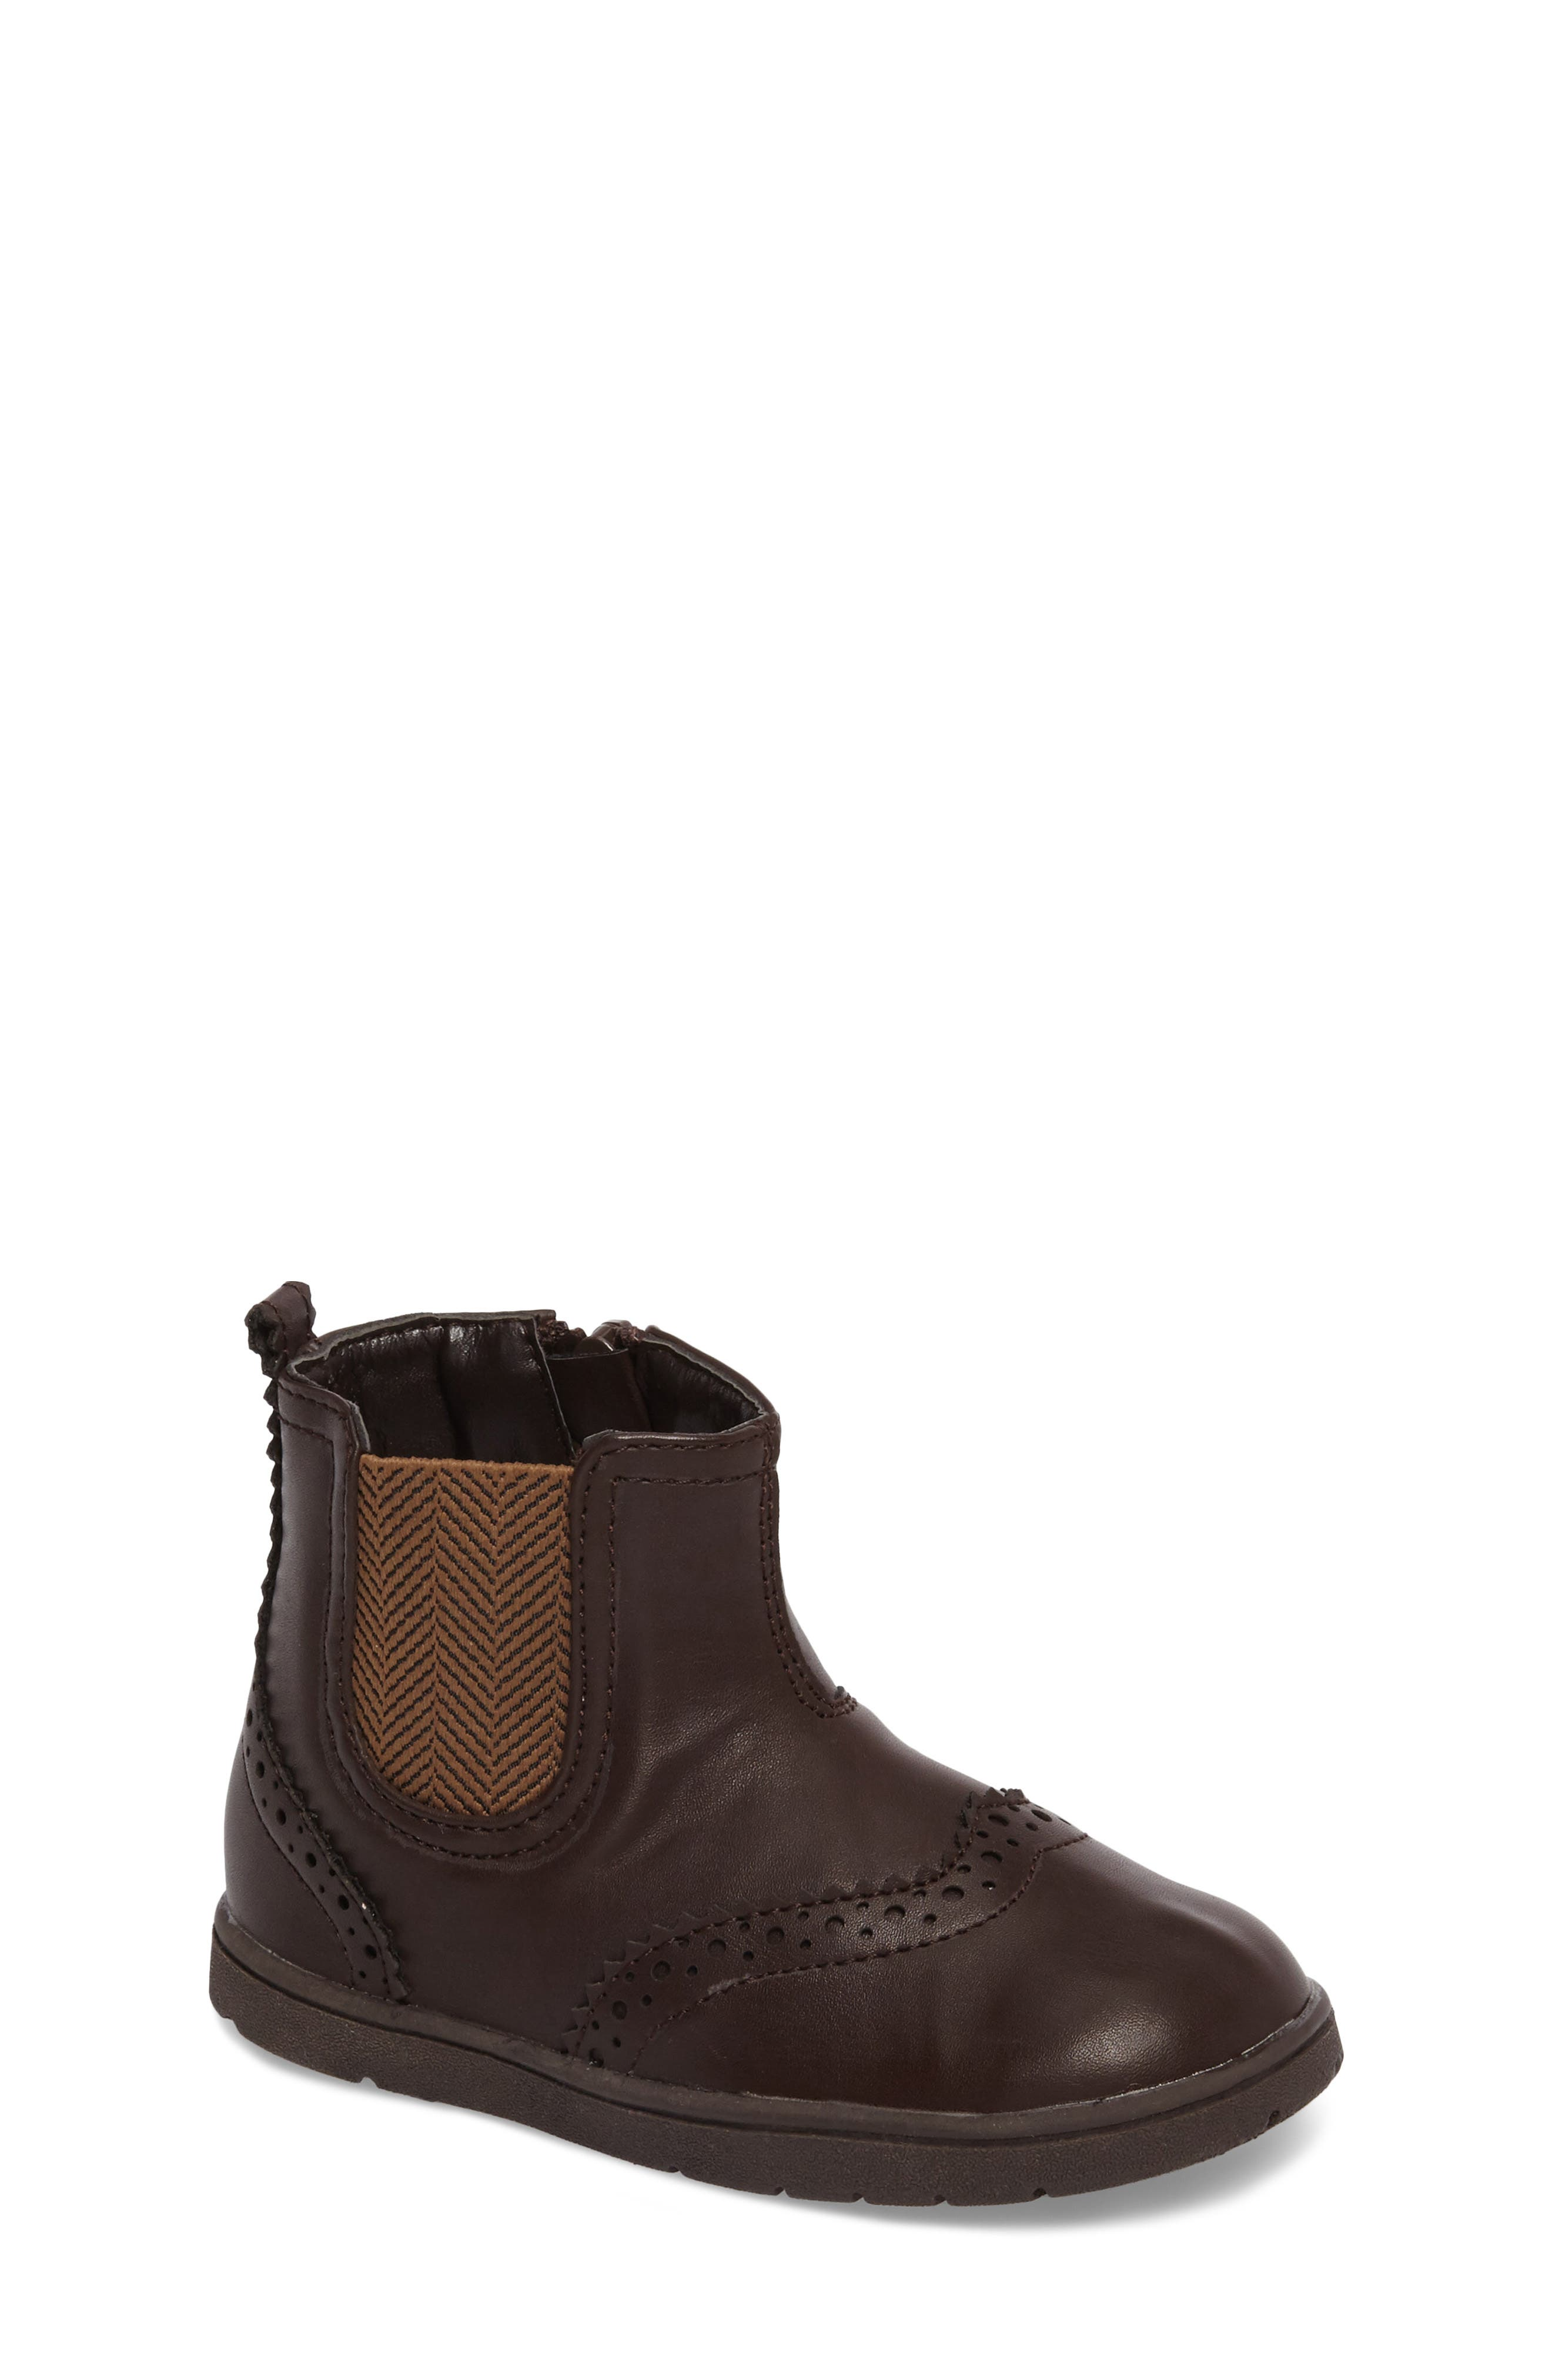 Peace Wing Bootie,                         Main,                         color, 204